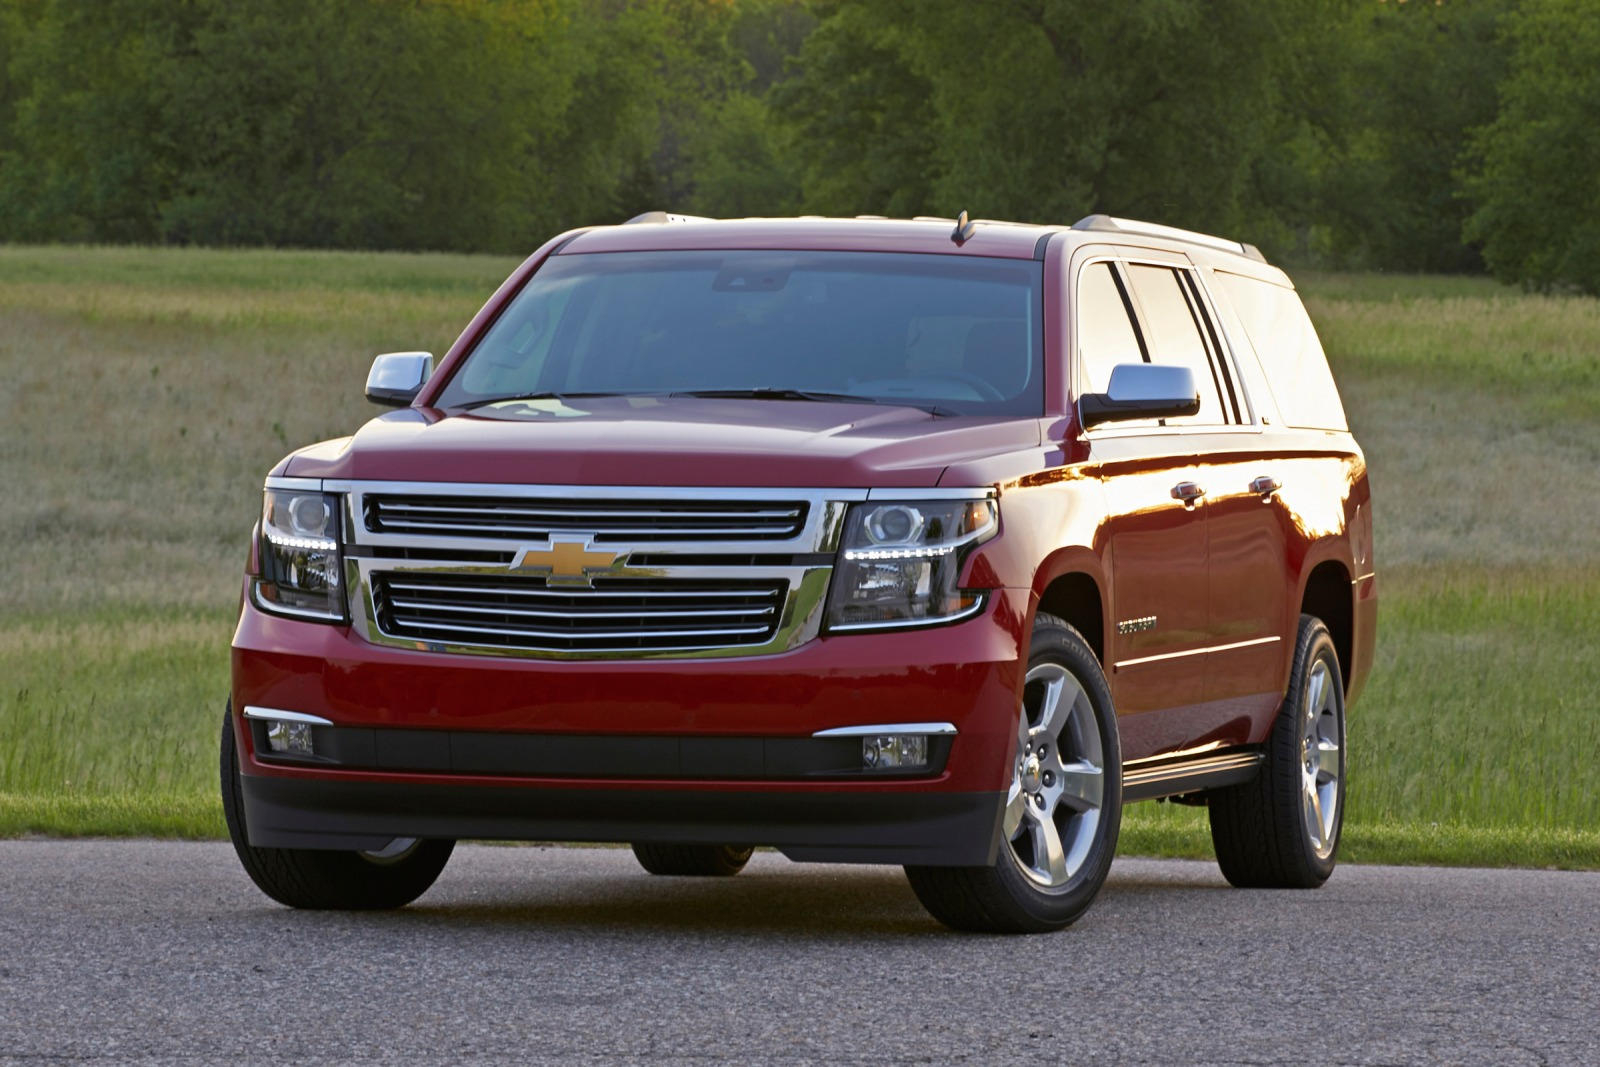 2019 Chevrolet Suburban Review, Trims, Specs And Price   Carbuzz 2021 Chevy Suburban Towing Capacity, Accessories, Awd